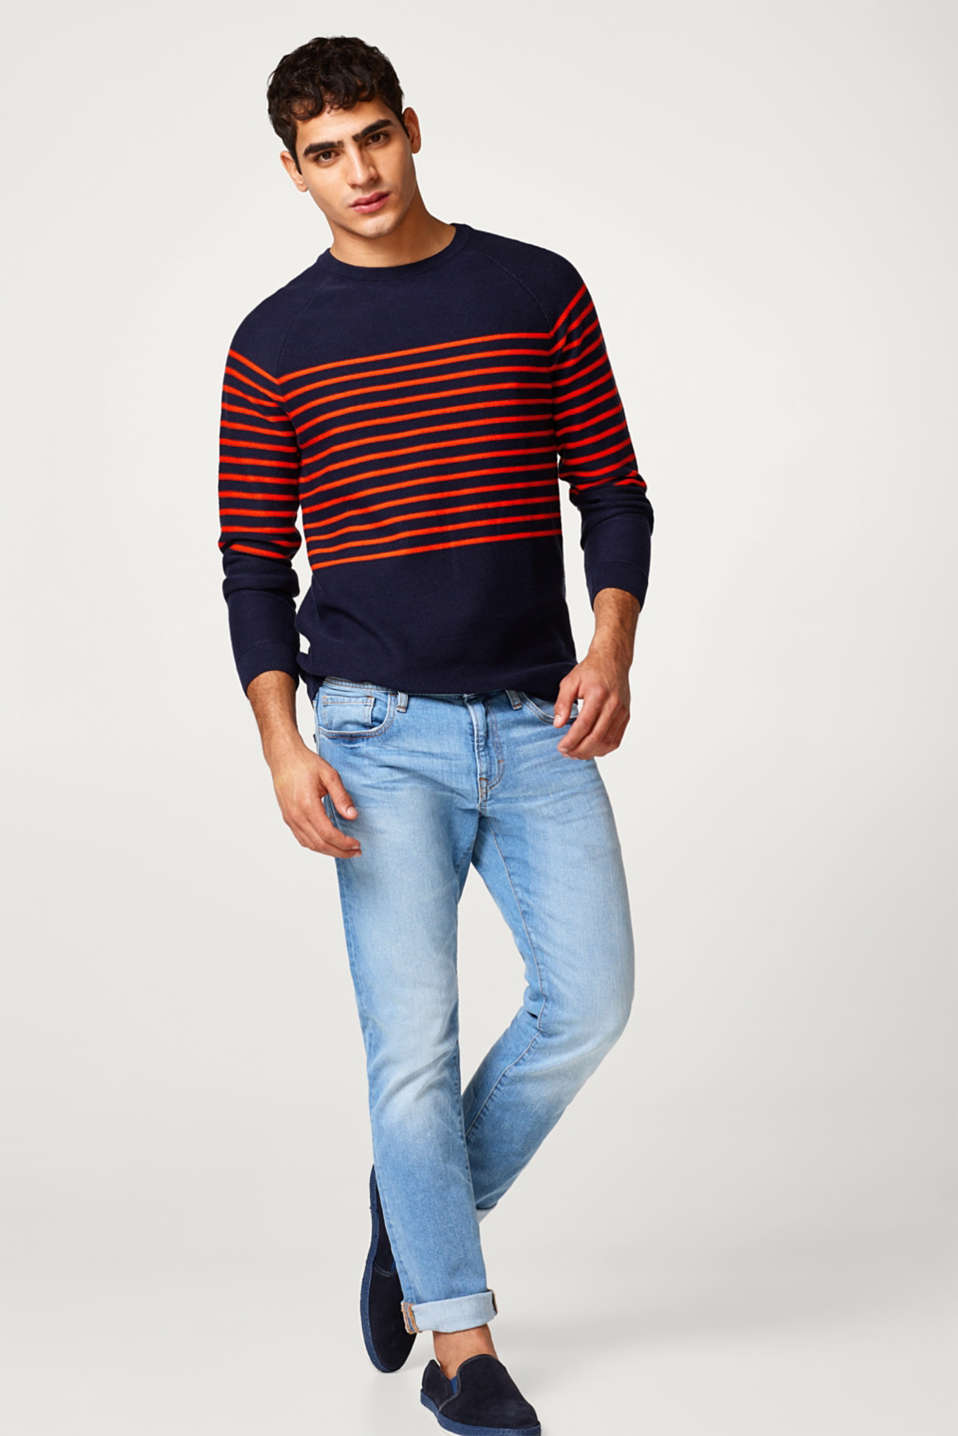 Jumper in a striped look, in pure cotton